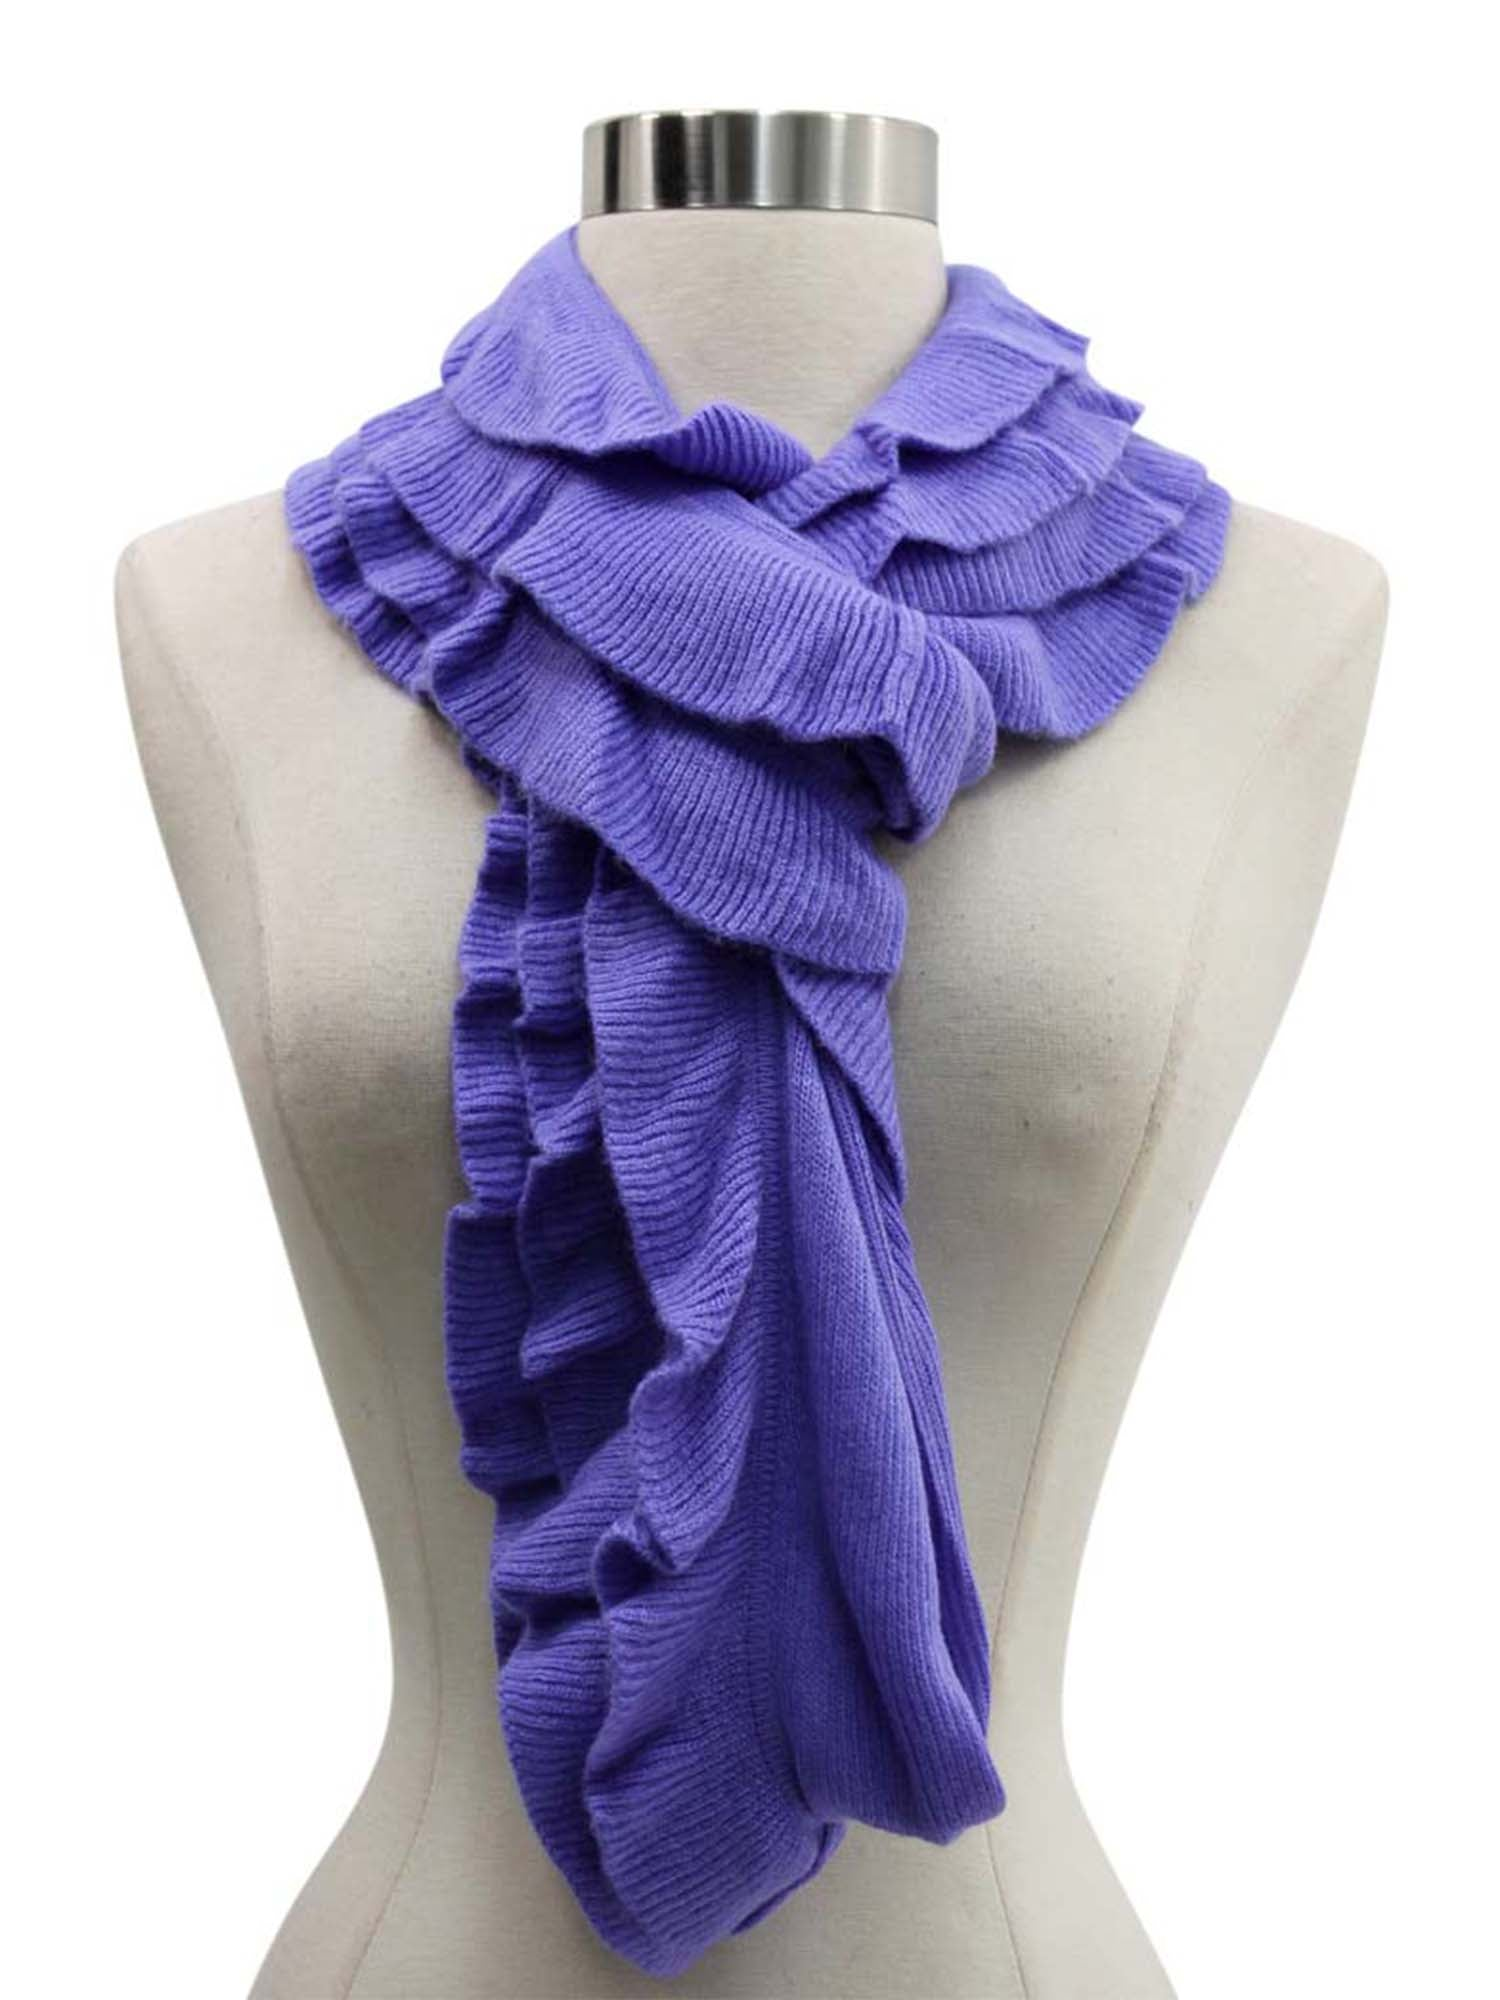 Feminine Ruffled Knit Winter Infinity Scarf